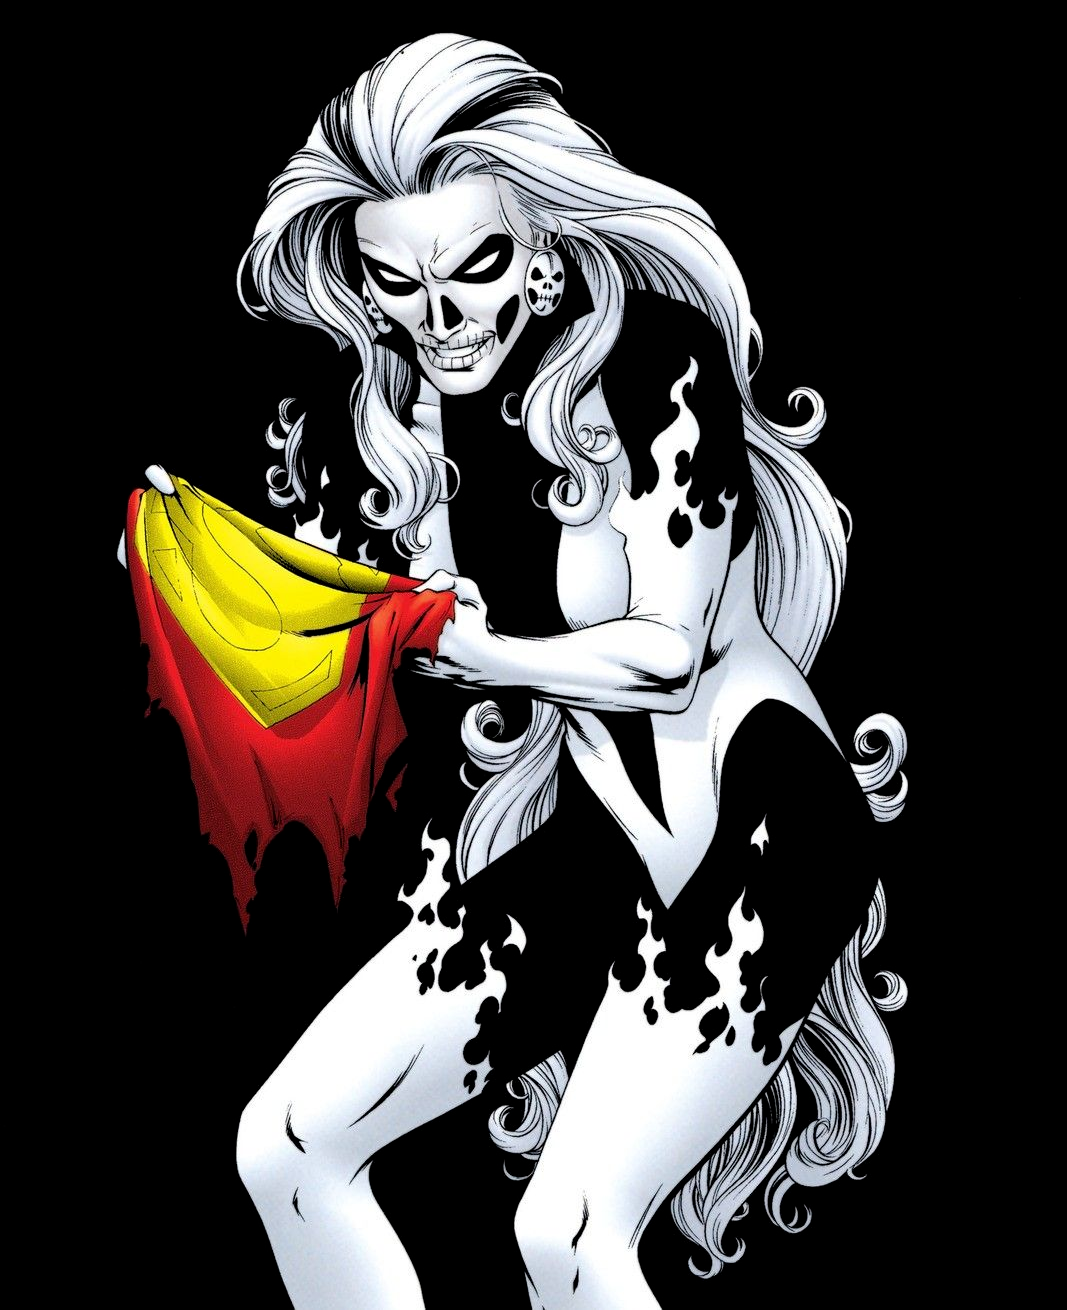 Image - Silver Banshee S-cape.png | Superman Wiki | FANDOM powered on black dog, bloody mary, shadow people, white lady, la llorona, headless horseman,